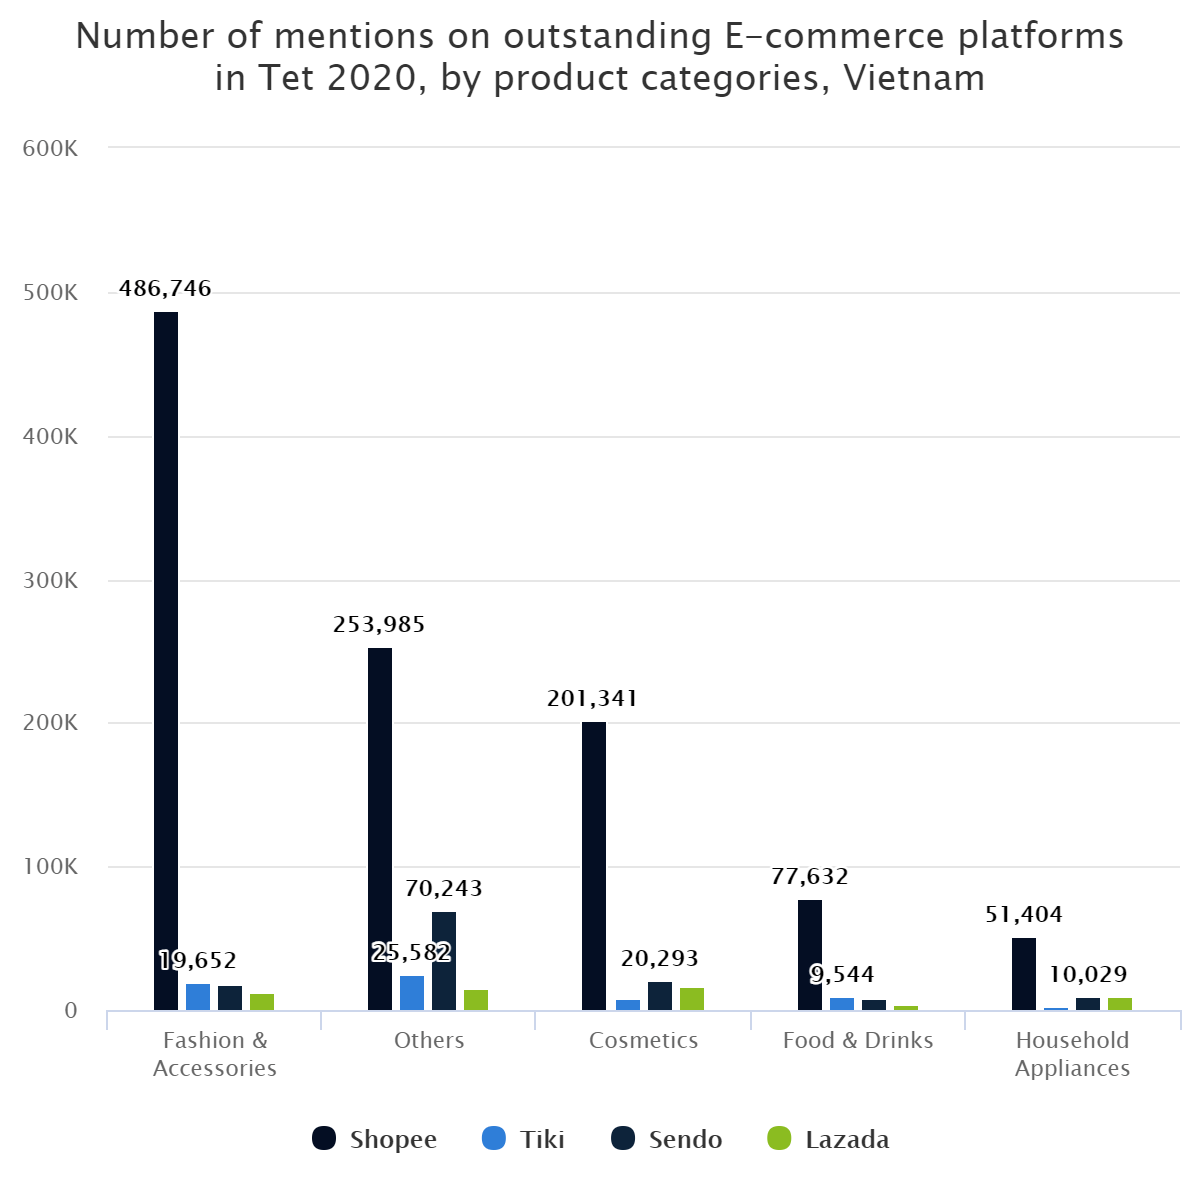 Number of mentions on outstanding E-commerce platforms in Tet 2020, by product categories, Vietnam